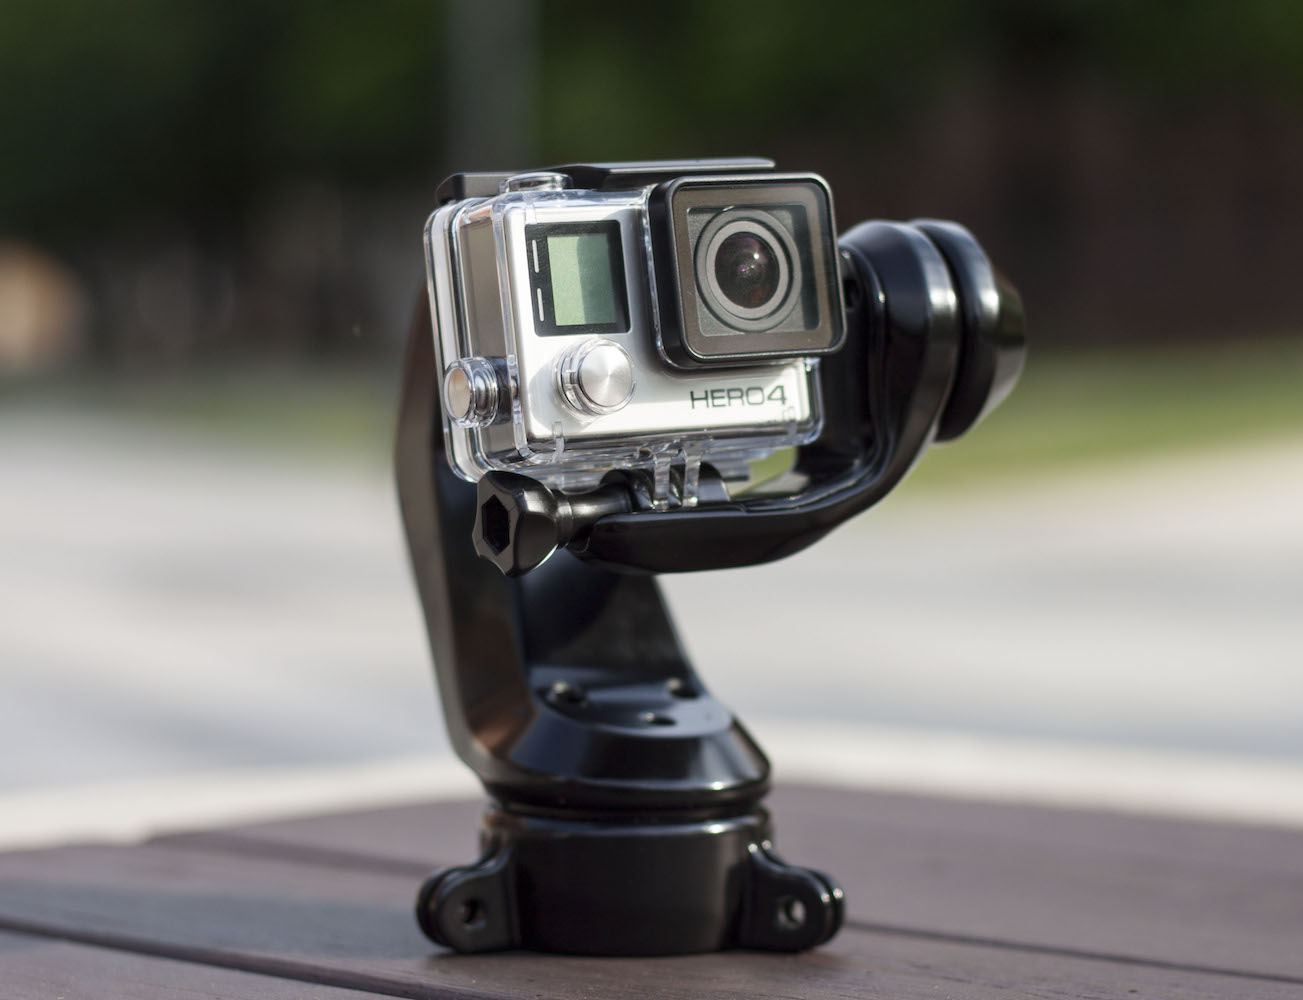 Sybrillo – The Most Versatile GoPro Accessory